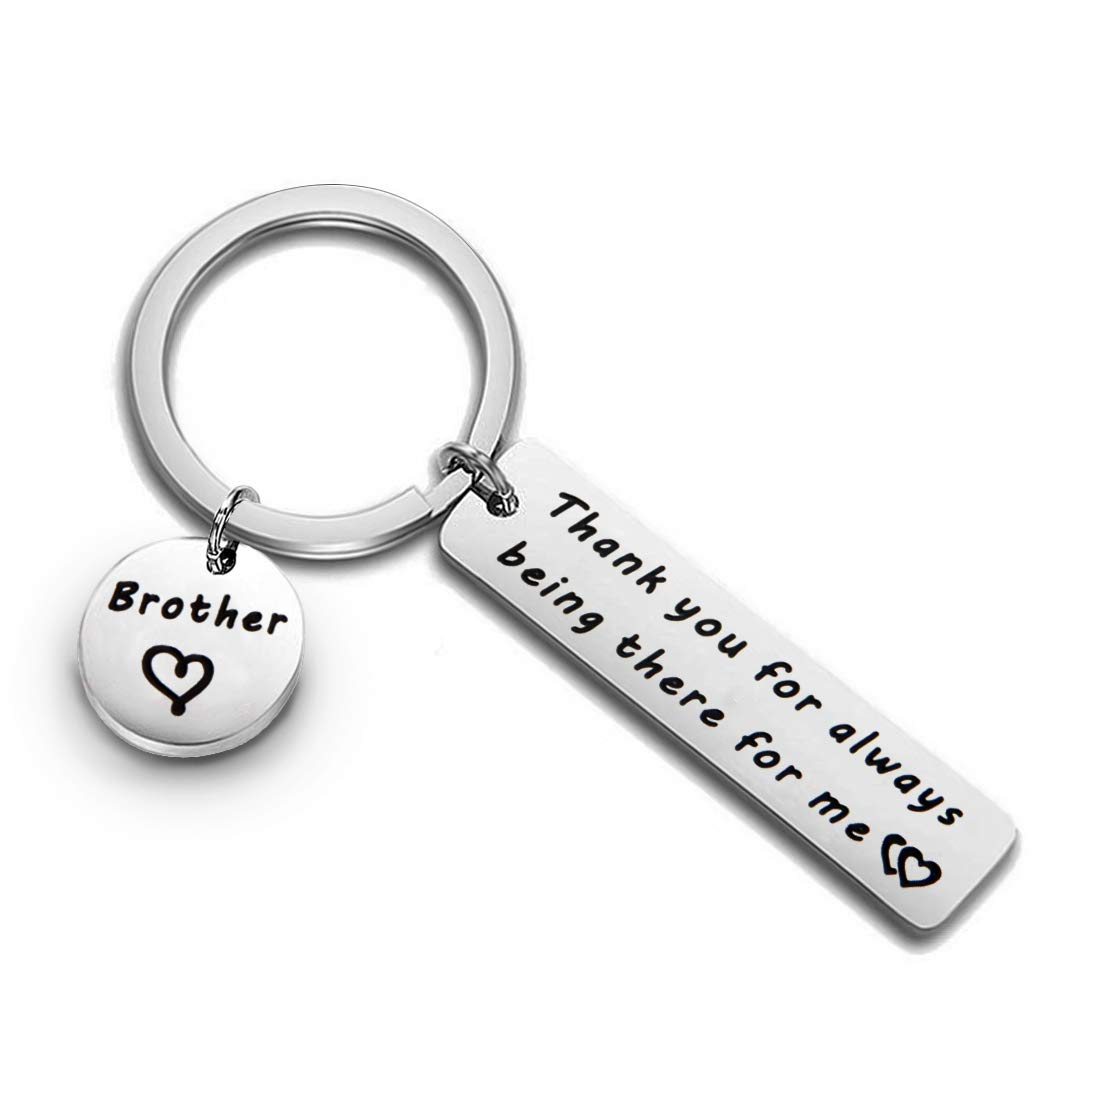 Brother Keychain Thank You for Always Being There for Me Gift for Brother Family Jewelry